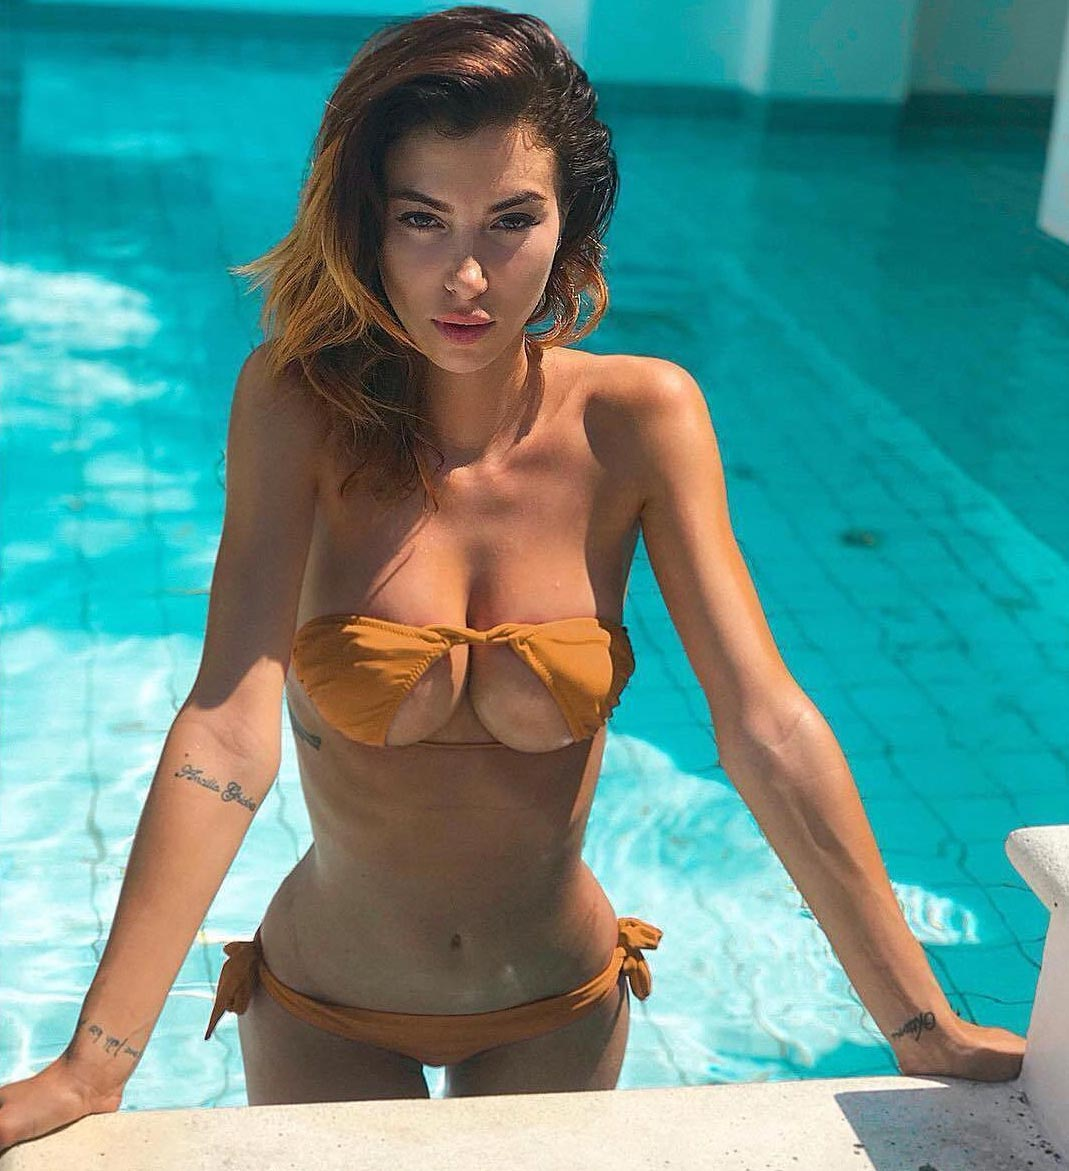 модель Валентина Фрадеграда model Valentina Fradegrada